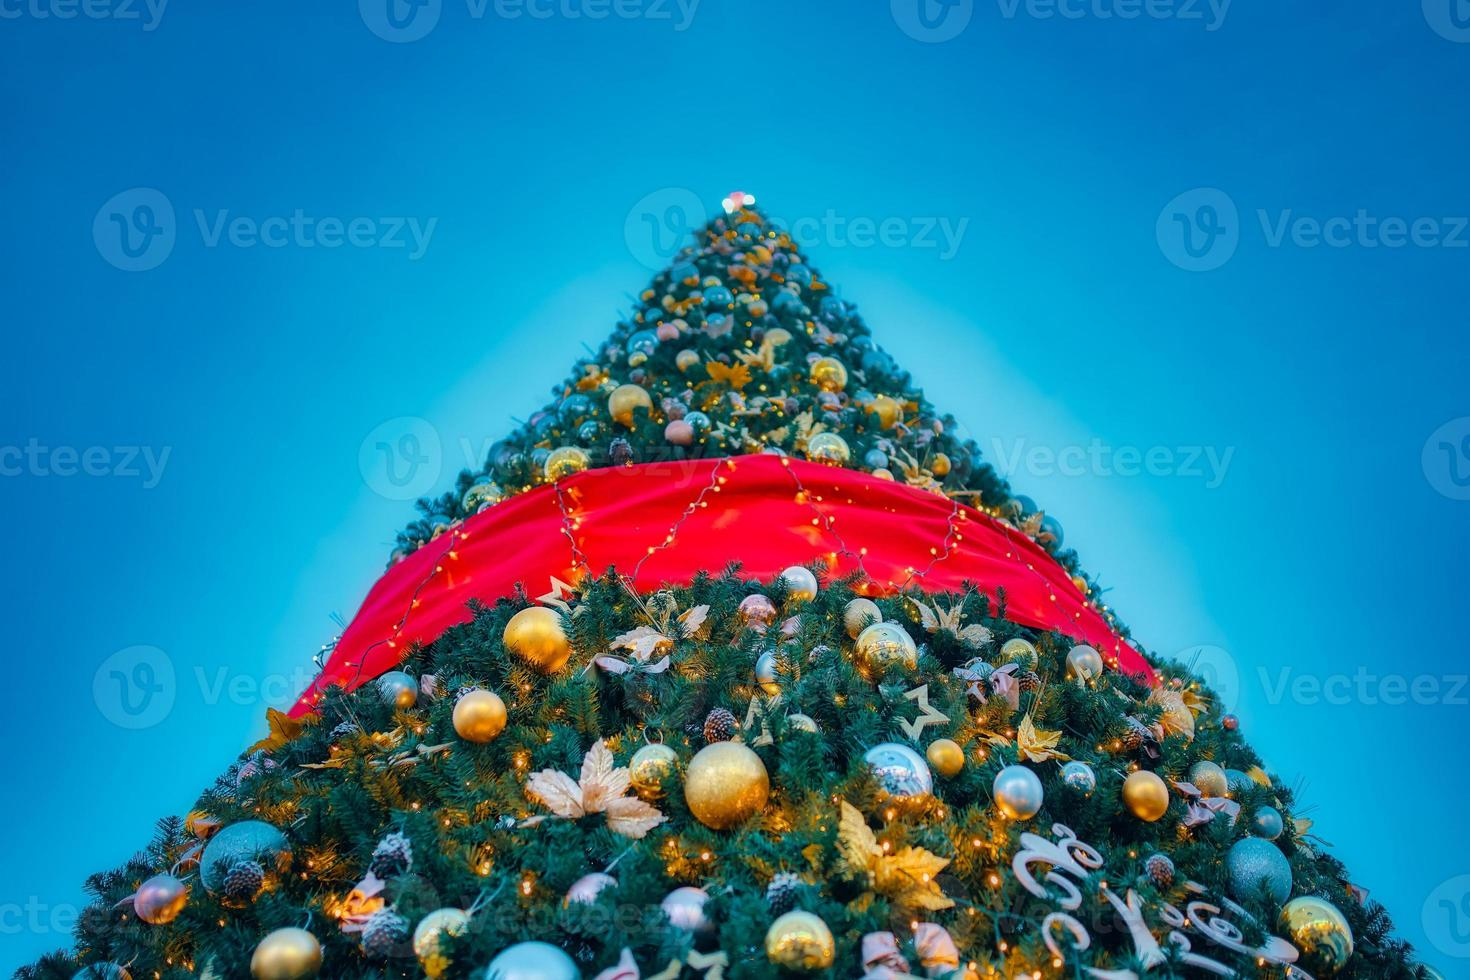 Christmas tree with decorations. photo